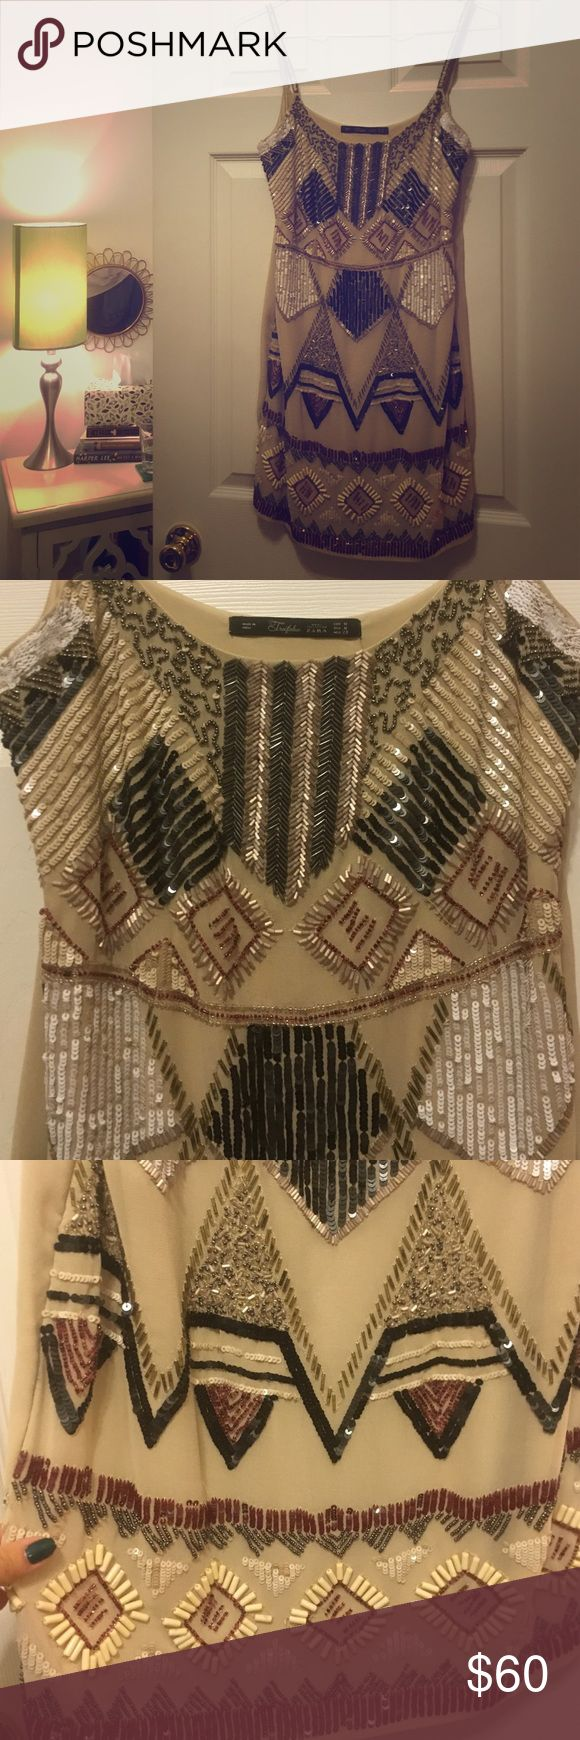 Zara Beaded Aztec Mini Dress Favorite dress of all time!!! Perfect, perfect, perfect for any occasion. Kind of resemble an All Saints beaded dress 😍 Zara Dresses Mini